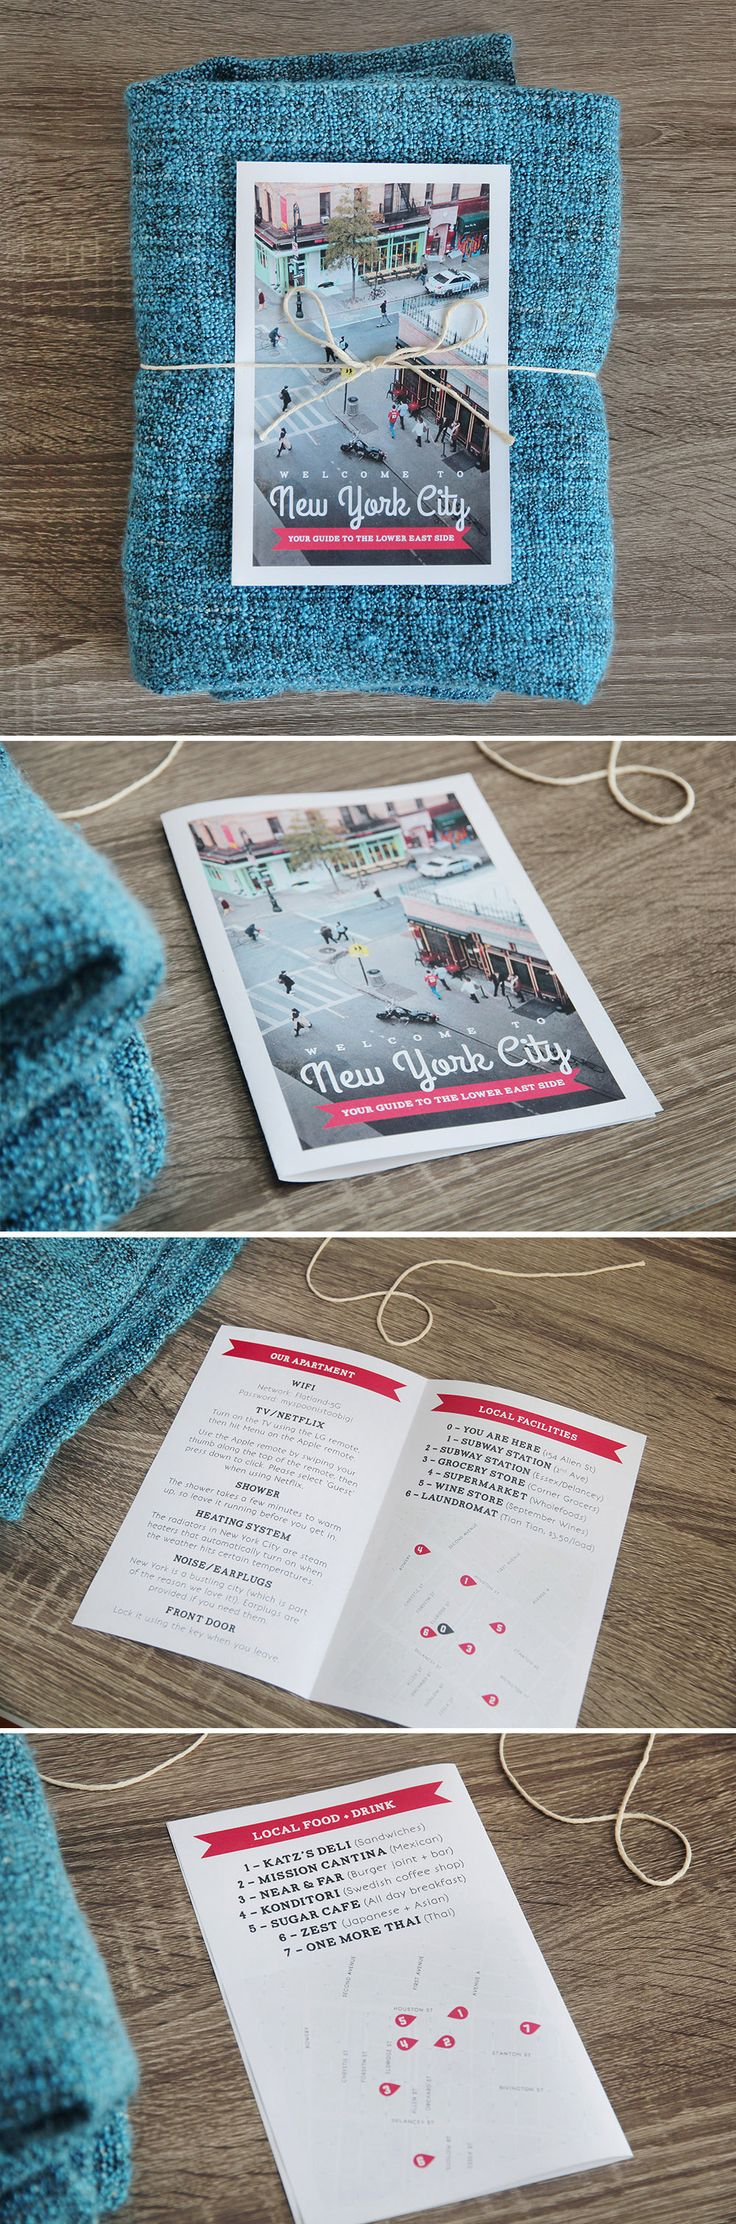 AirBnB Host Welcome Booklet including local map and recommendations - print it at home for your AirBnB guests! / Polkadot Stationery